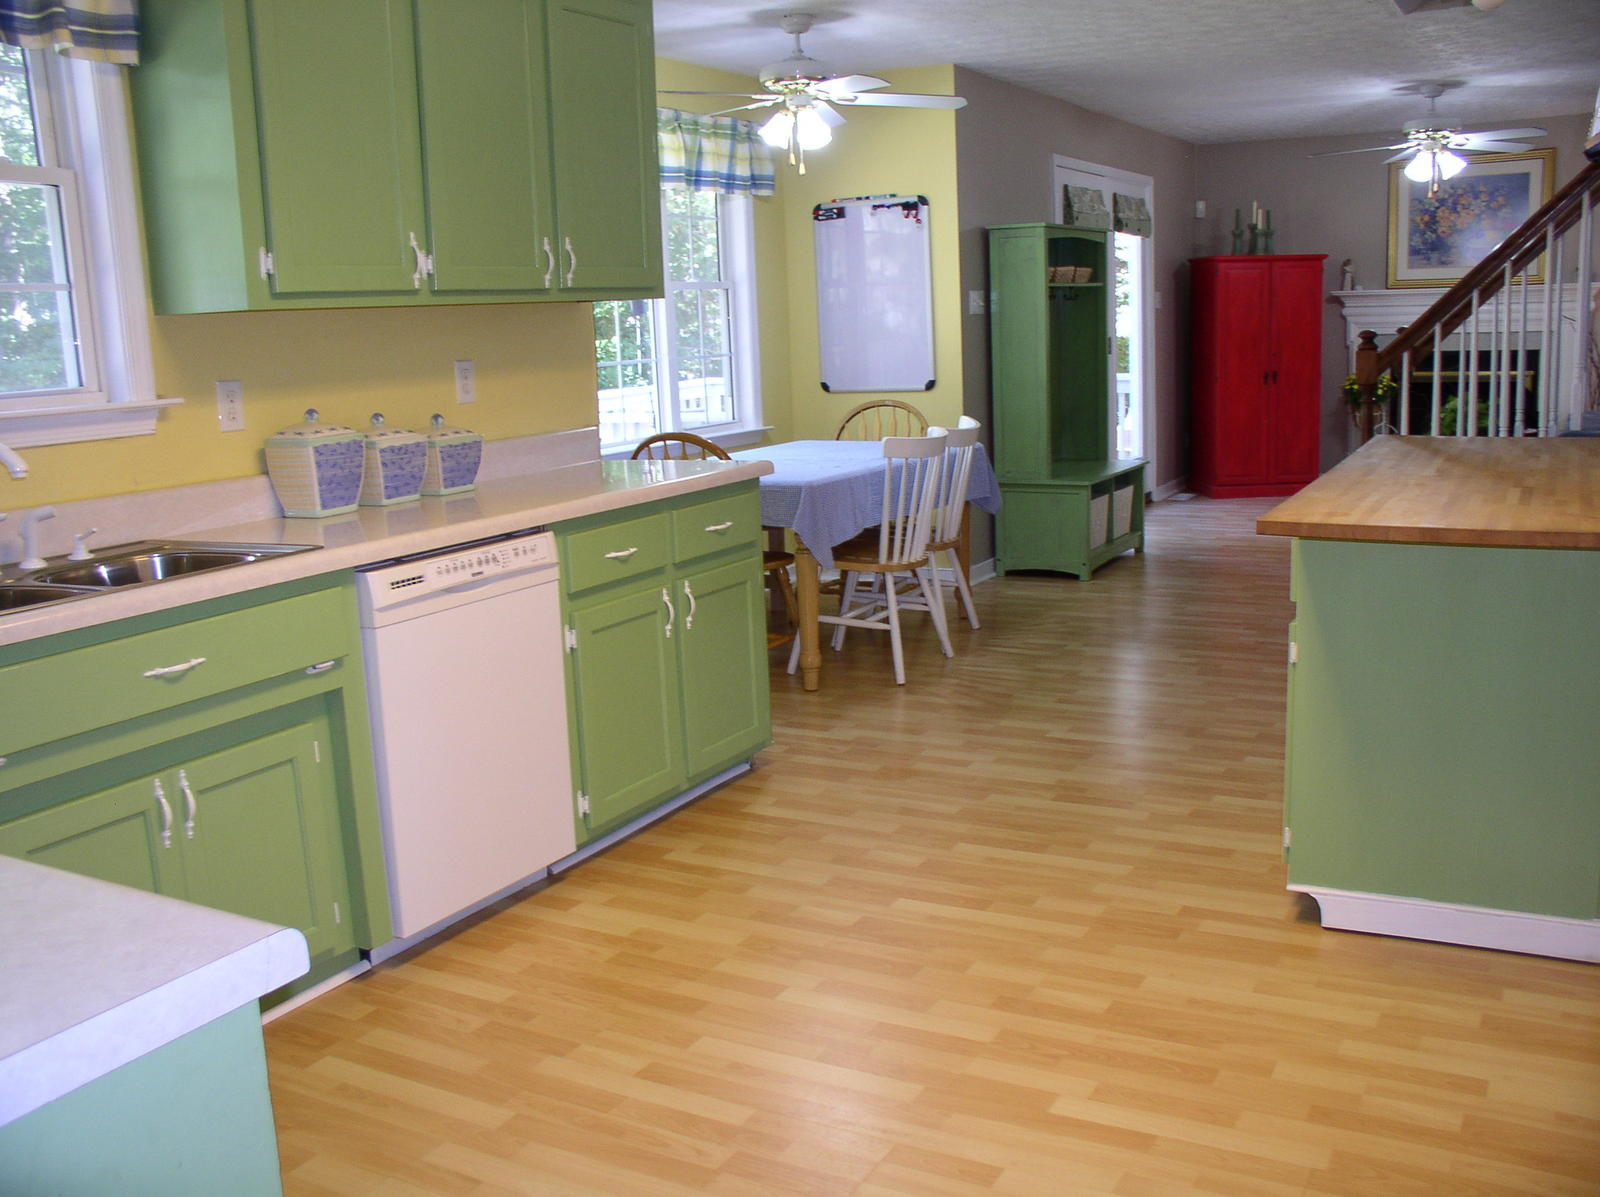 Painting your kitchen cabinets painting tips from the pros for Paint for kitchen cabinets ideas